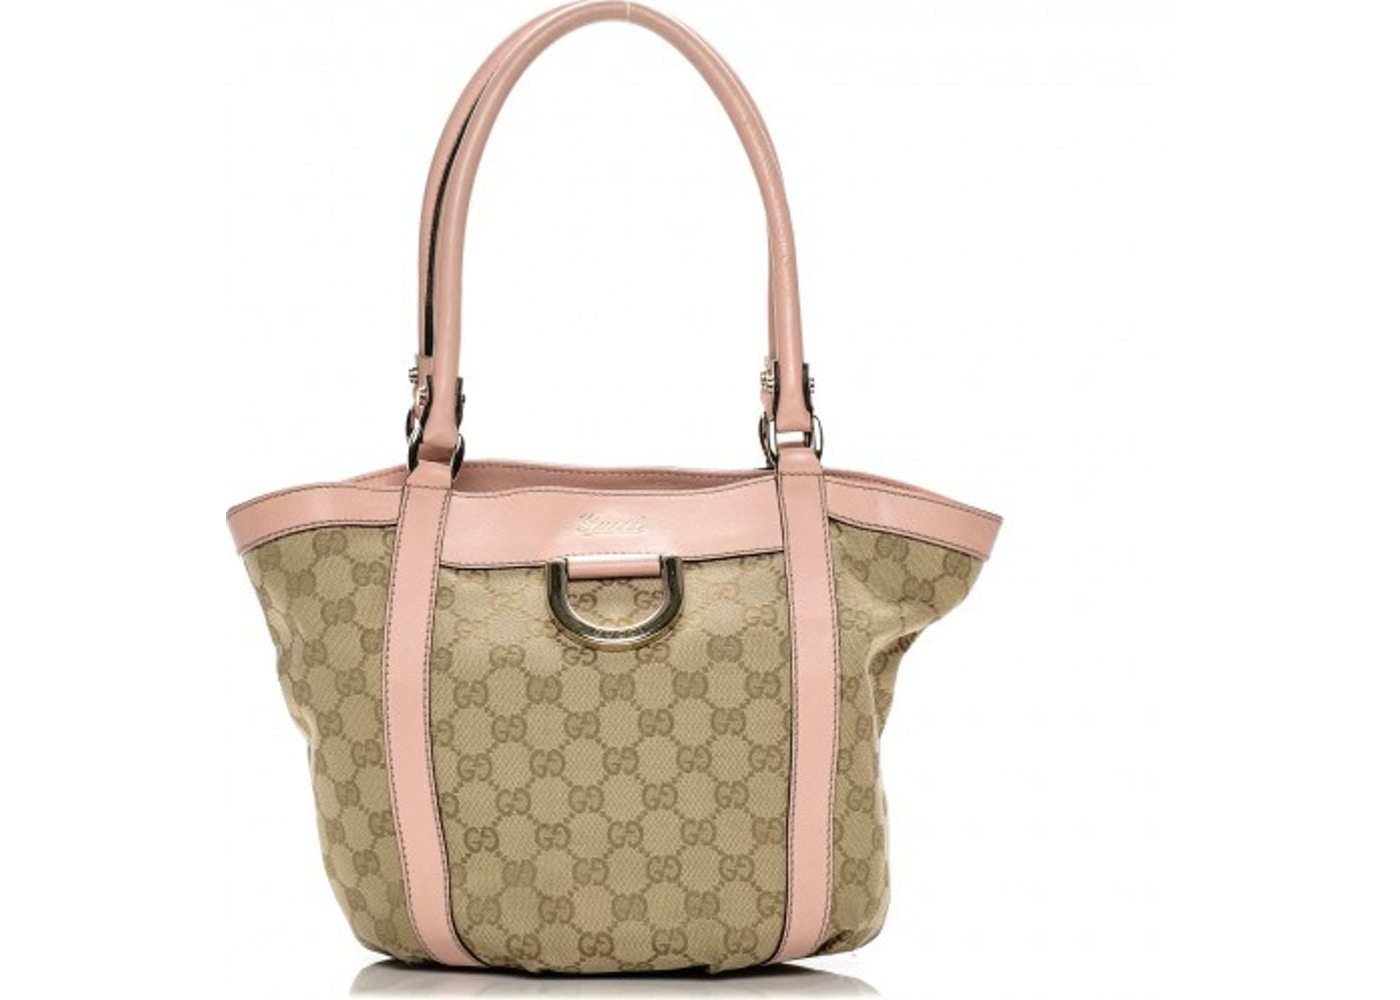 3bc24f72811 Gucci D Ring Tote Monogram GG Small Pink/Gold